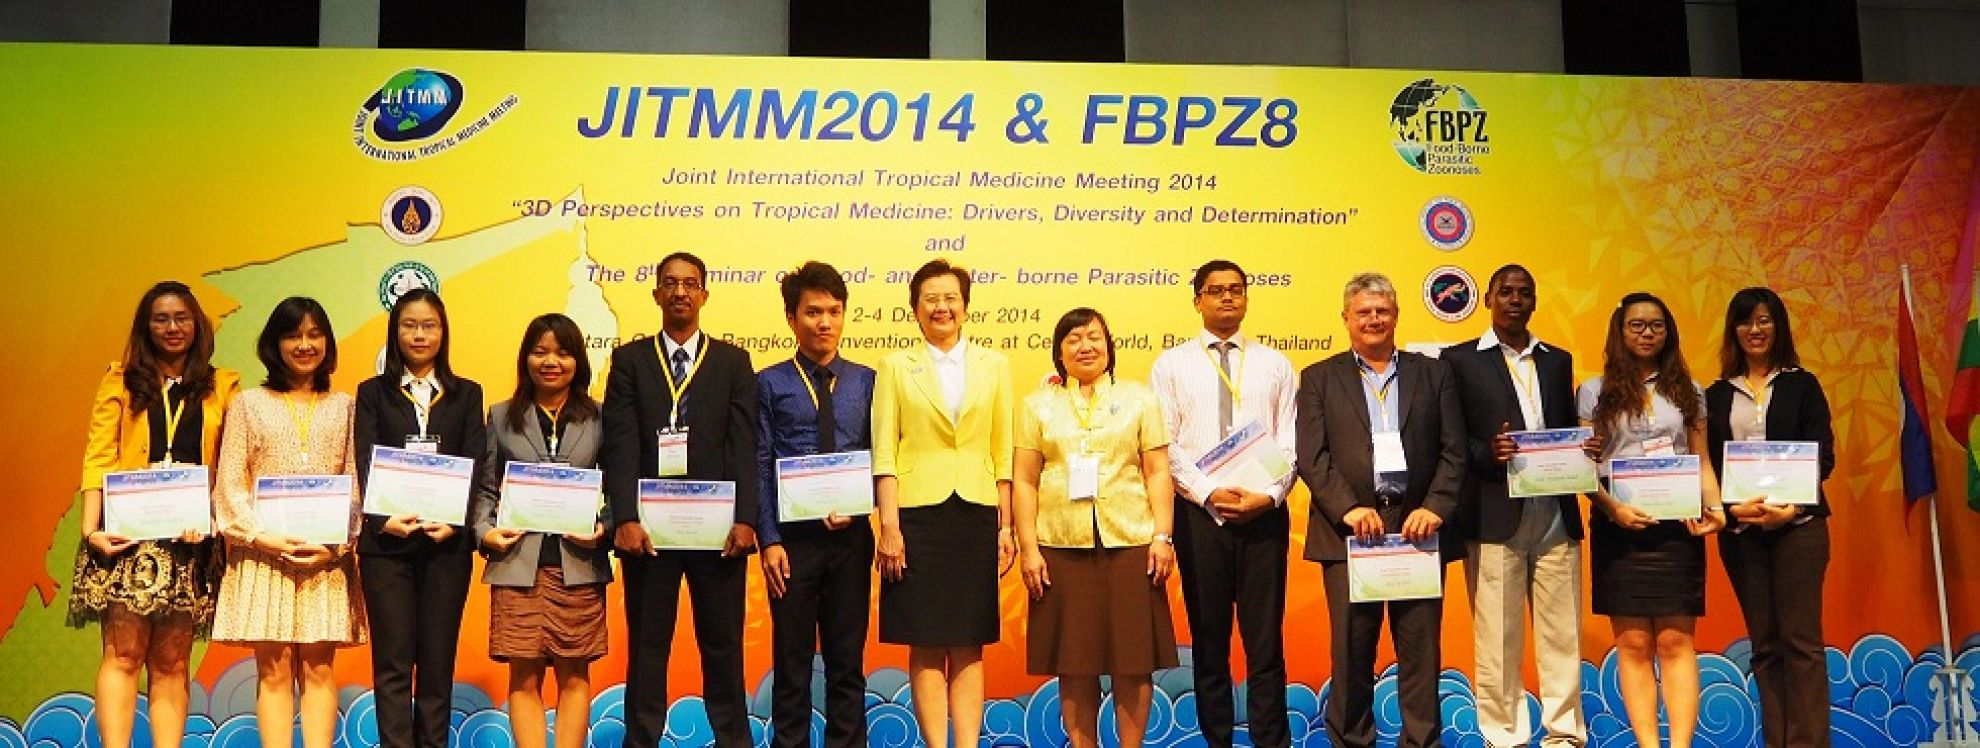 Latest News Malaria consortium at the joint international tropical medicine meeting 2014